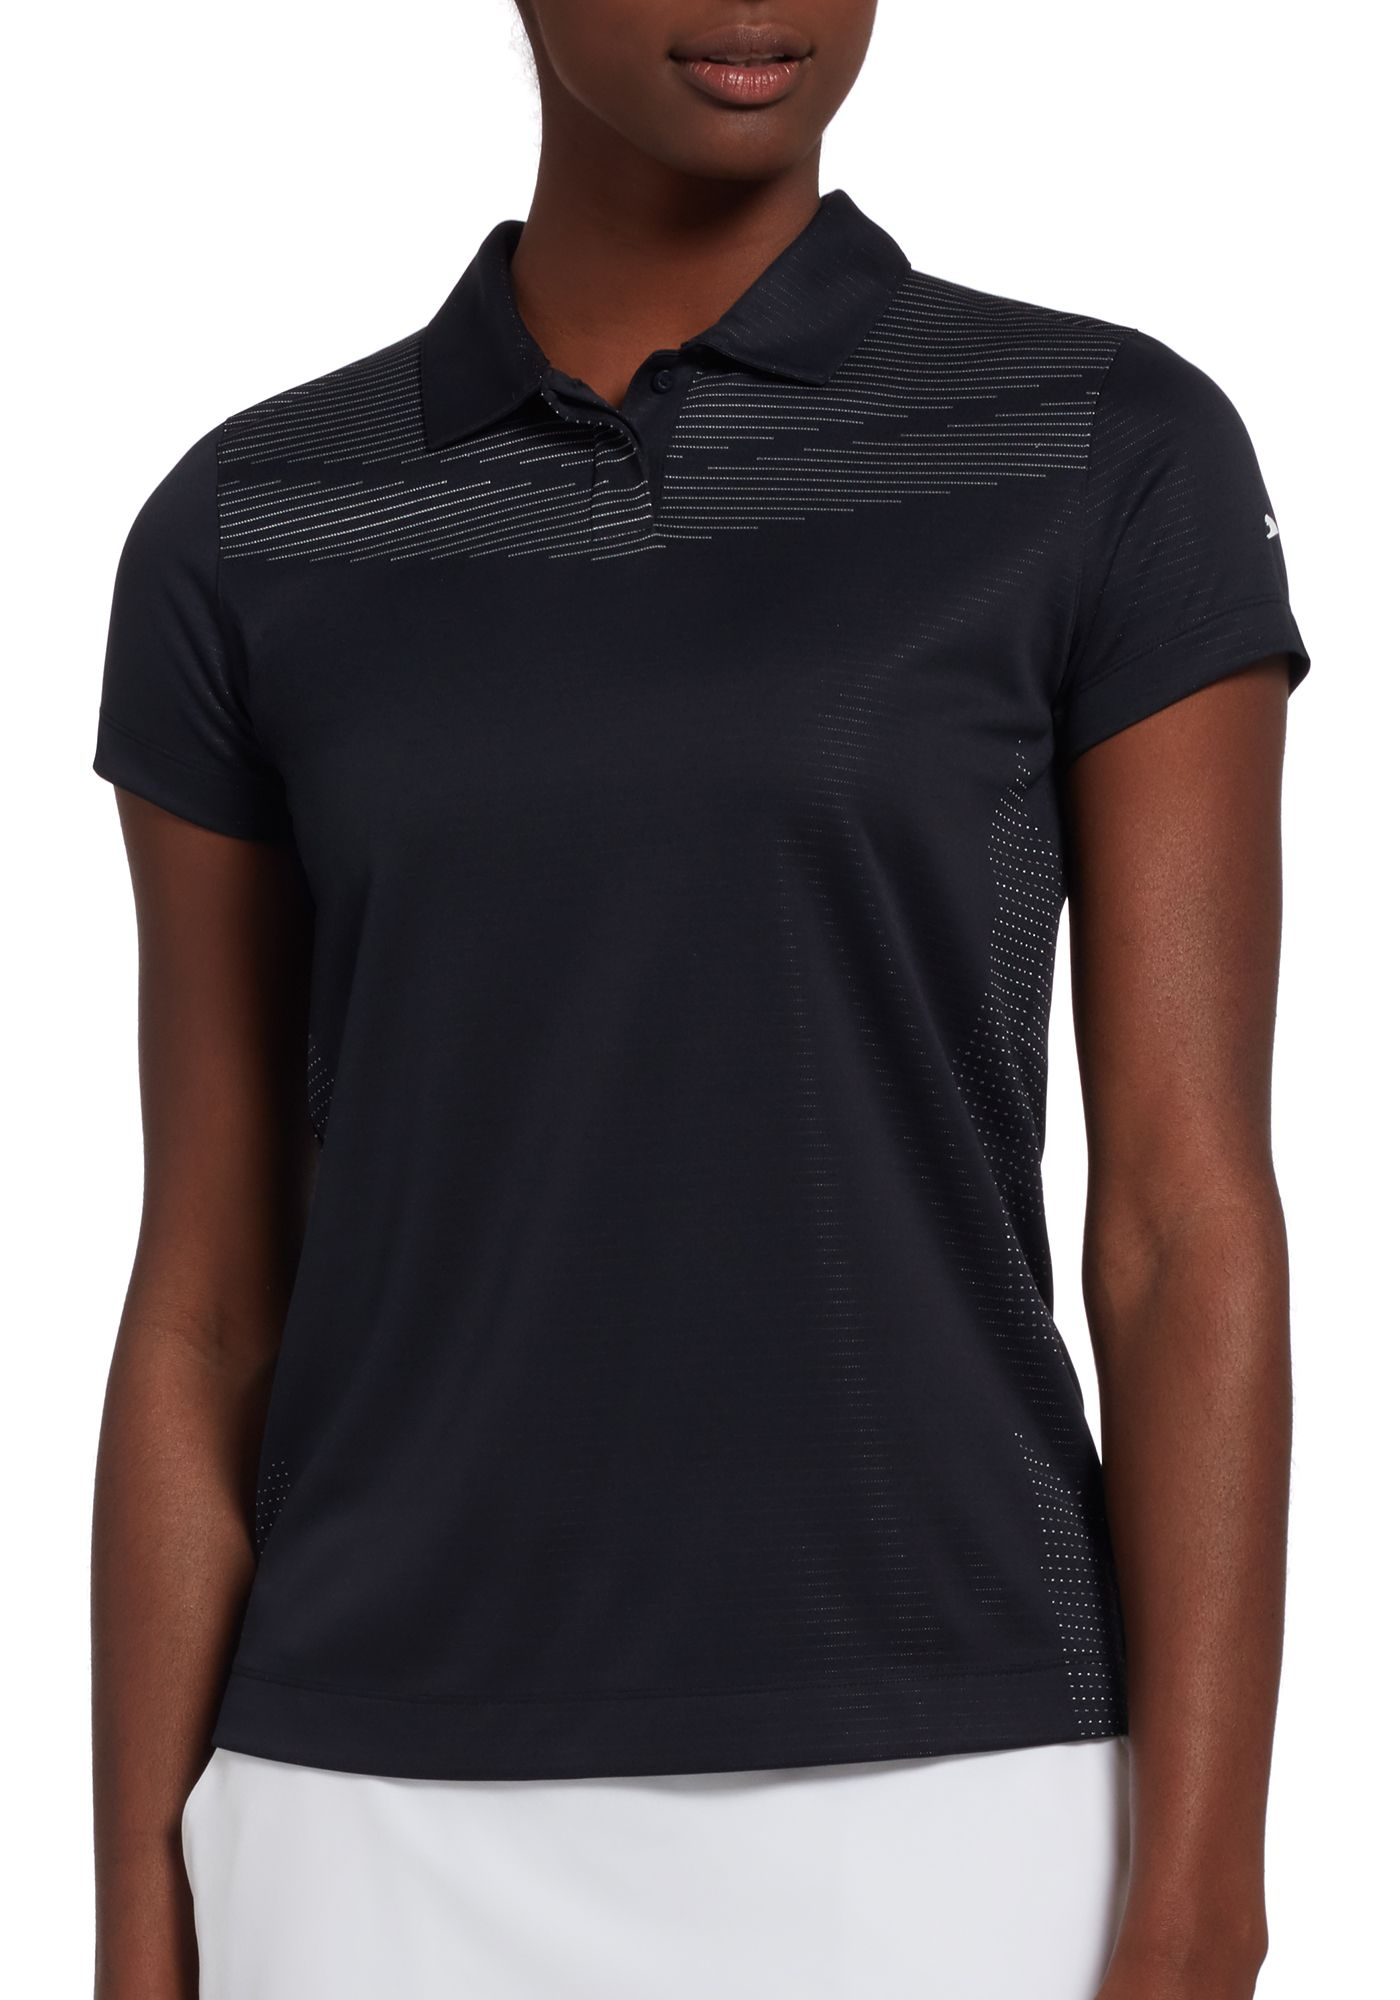 Slazenger Women's Body Mapping Short Sleeve Golf Polo